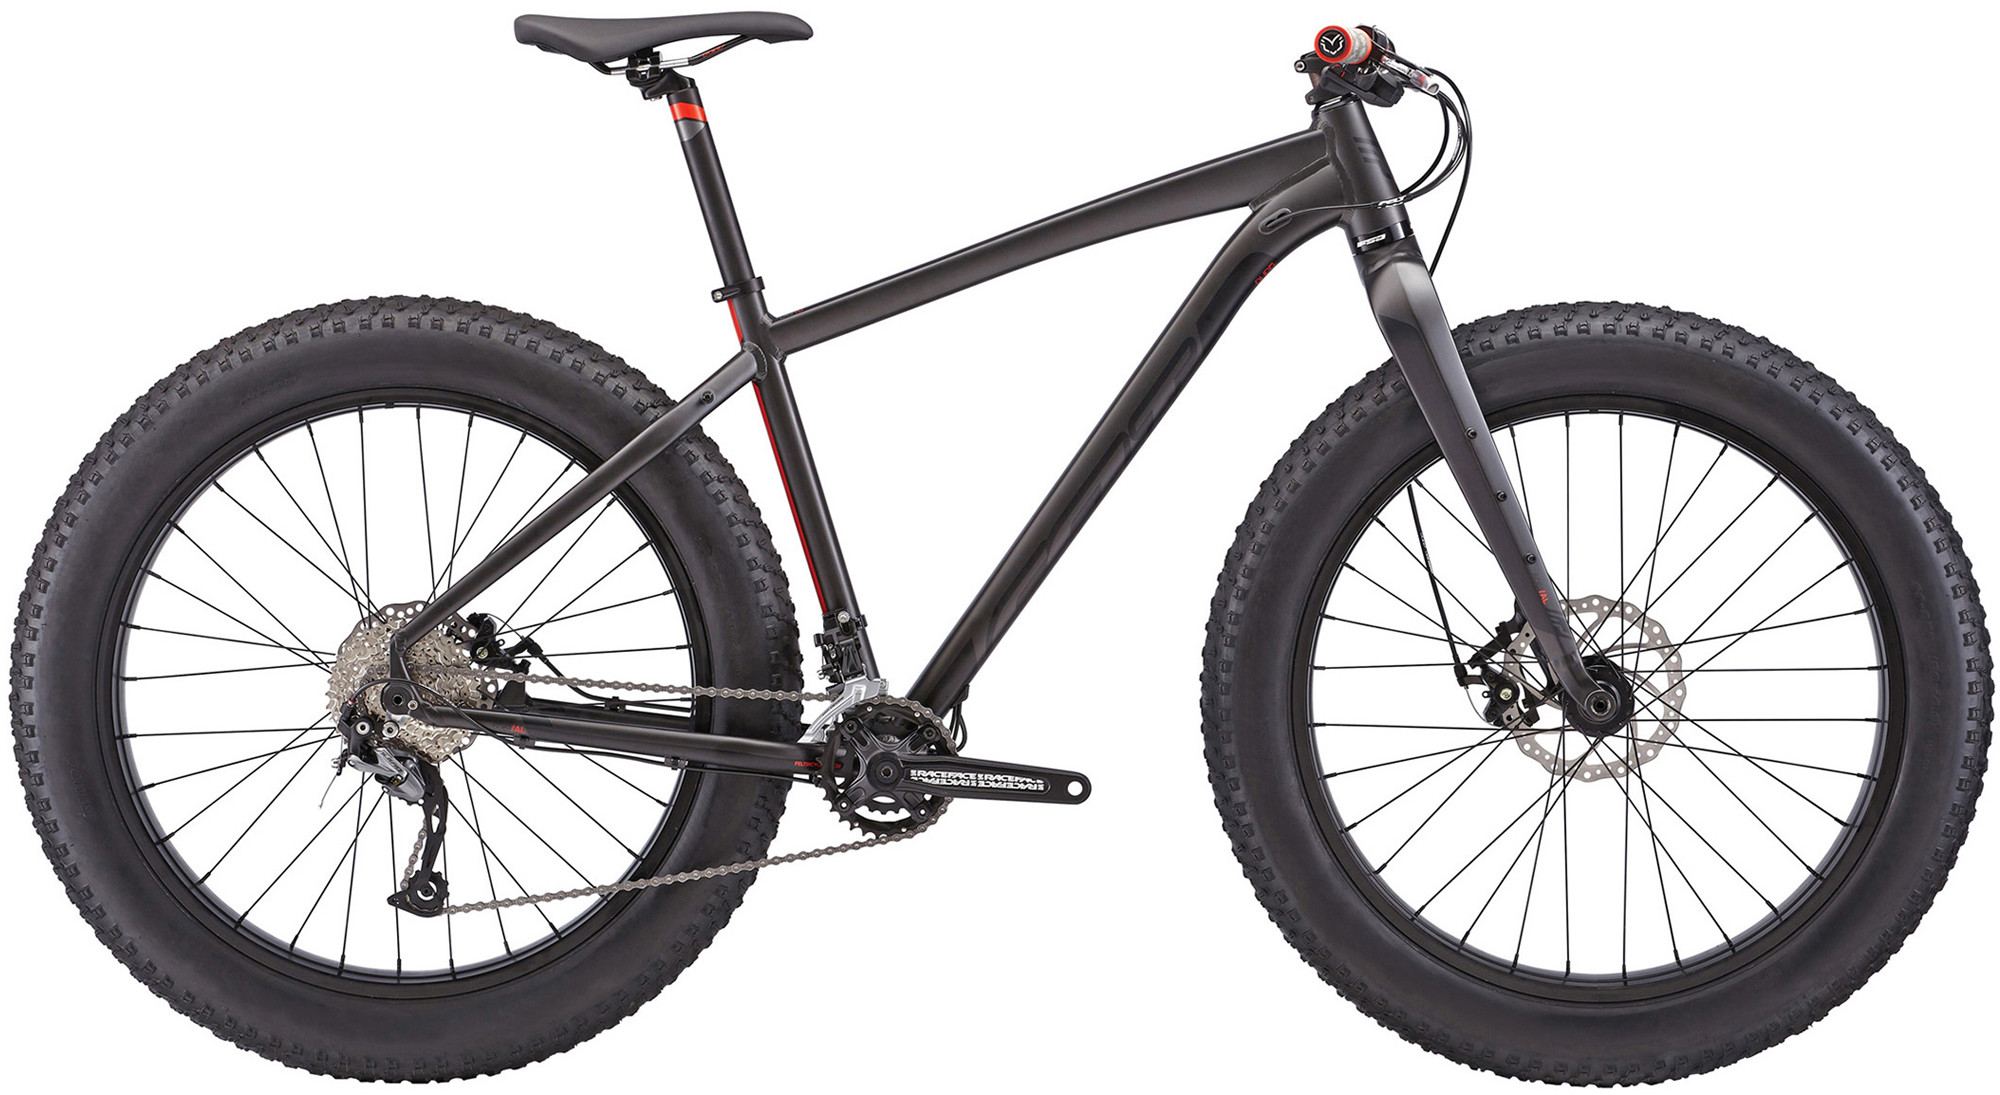 16782_felt_doubledouble_70_mountain_bike_2015